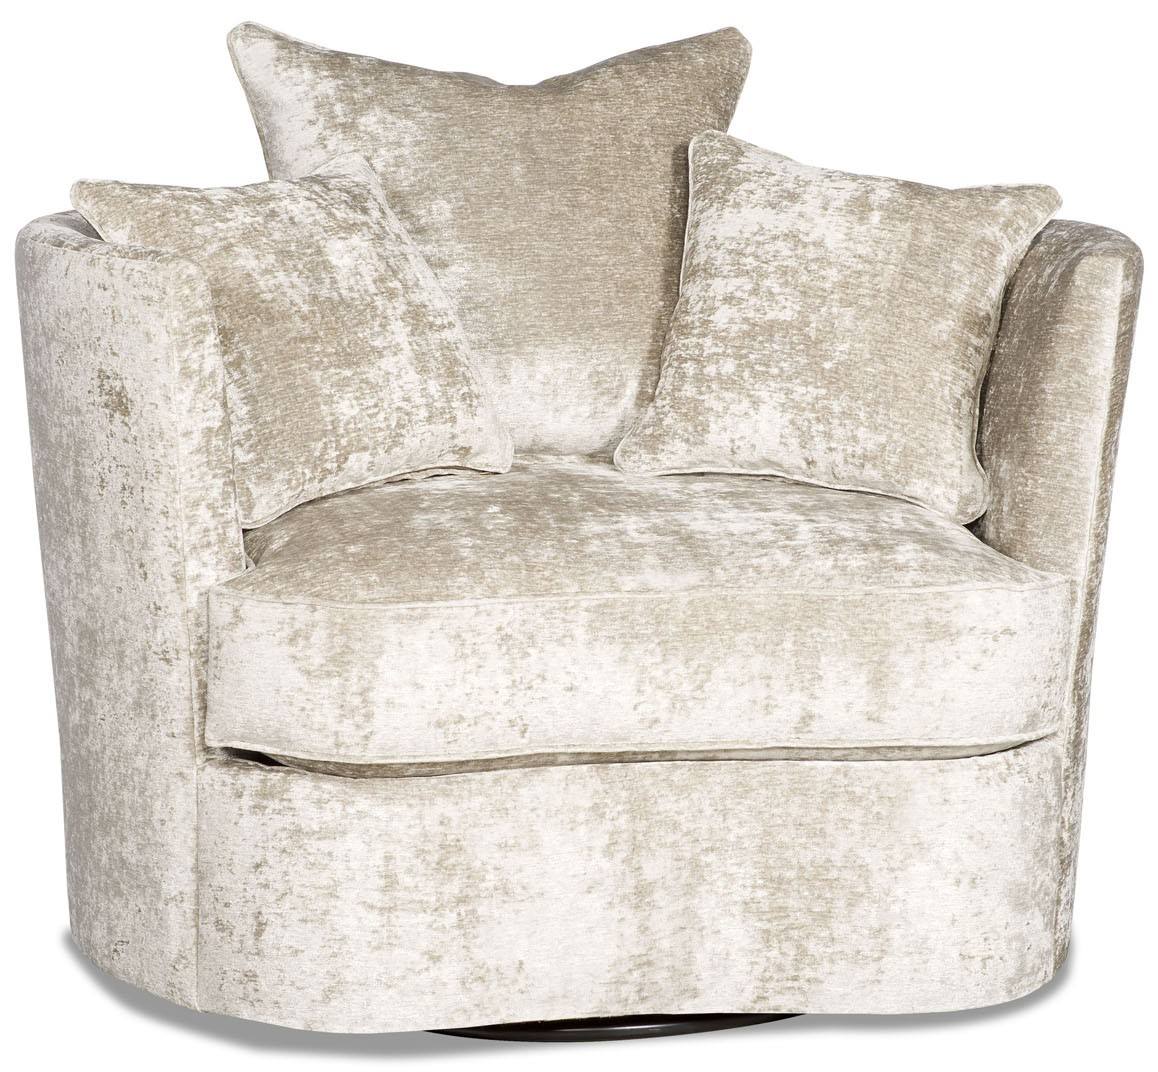 MOTION SEATING   Recliners, Swivels, Rockers Lux Platinum Barrel Style  Swivel Chair